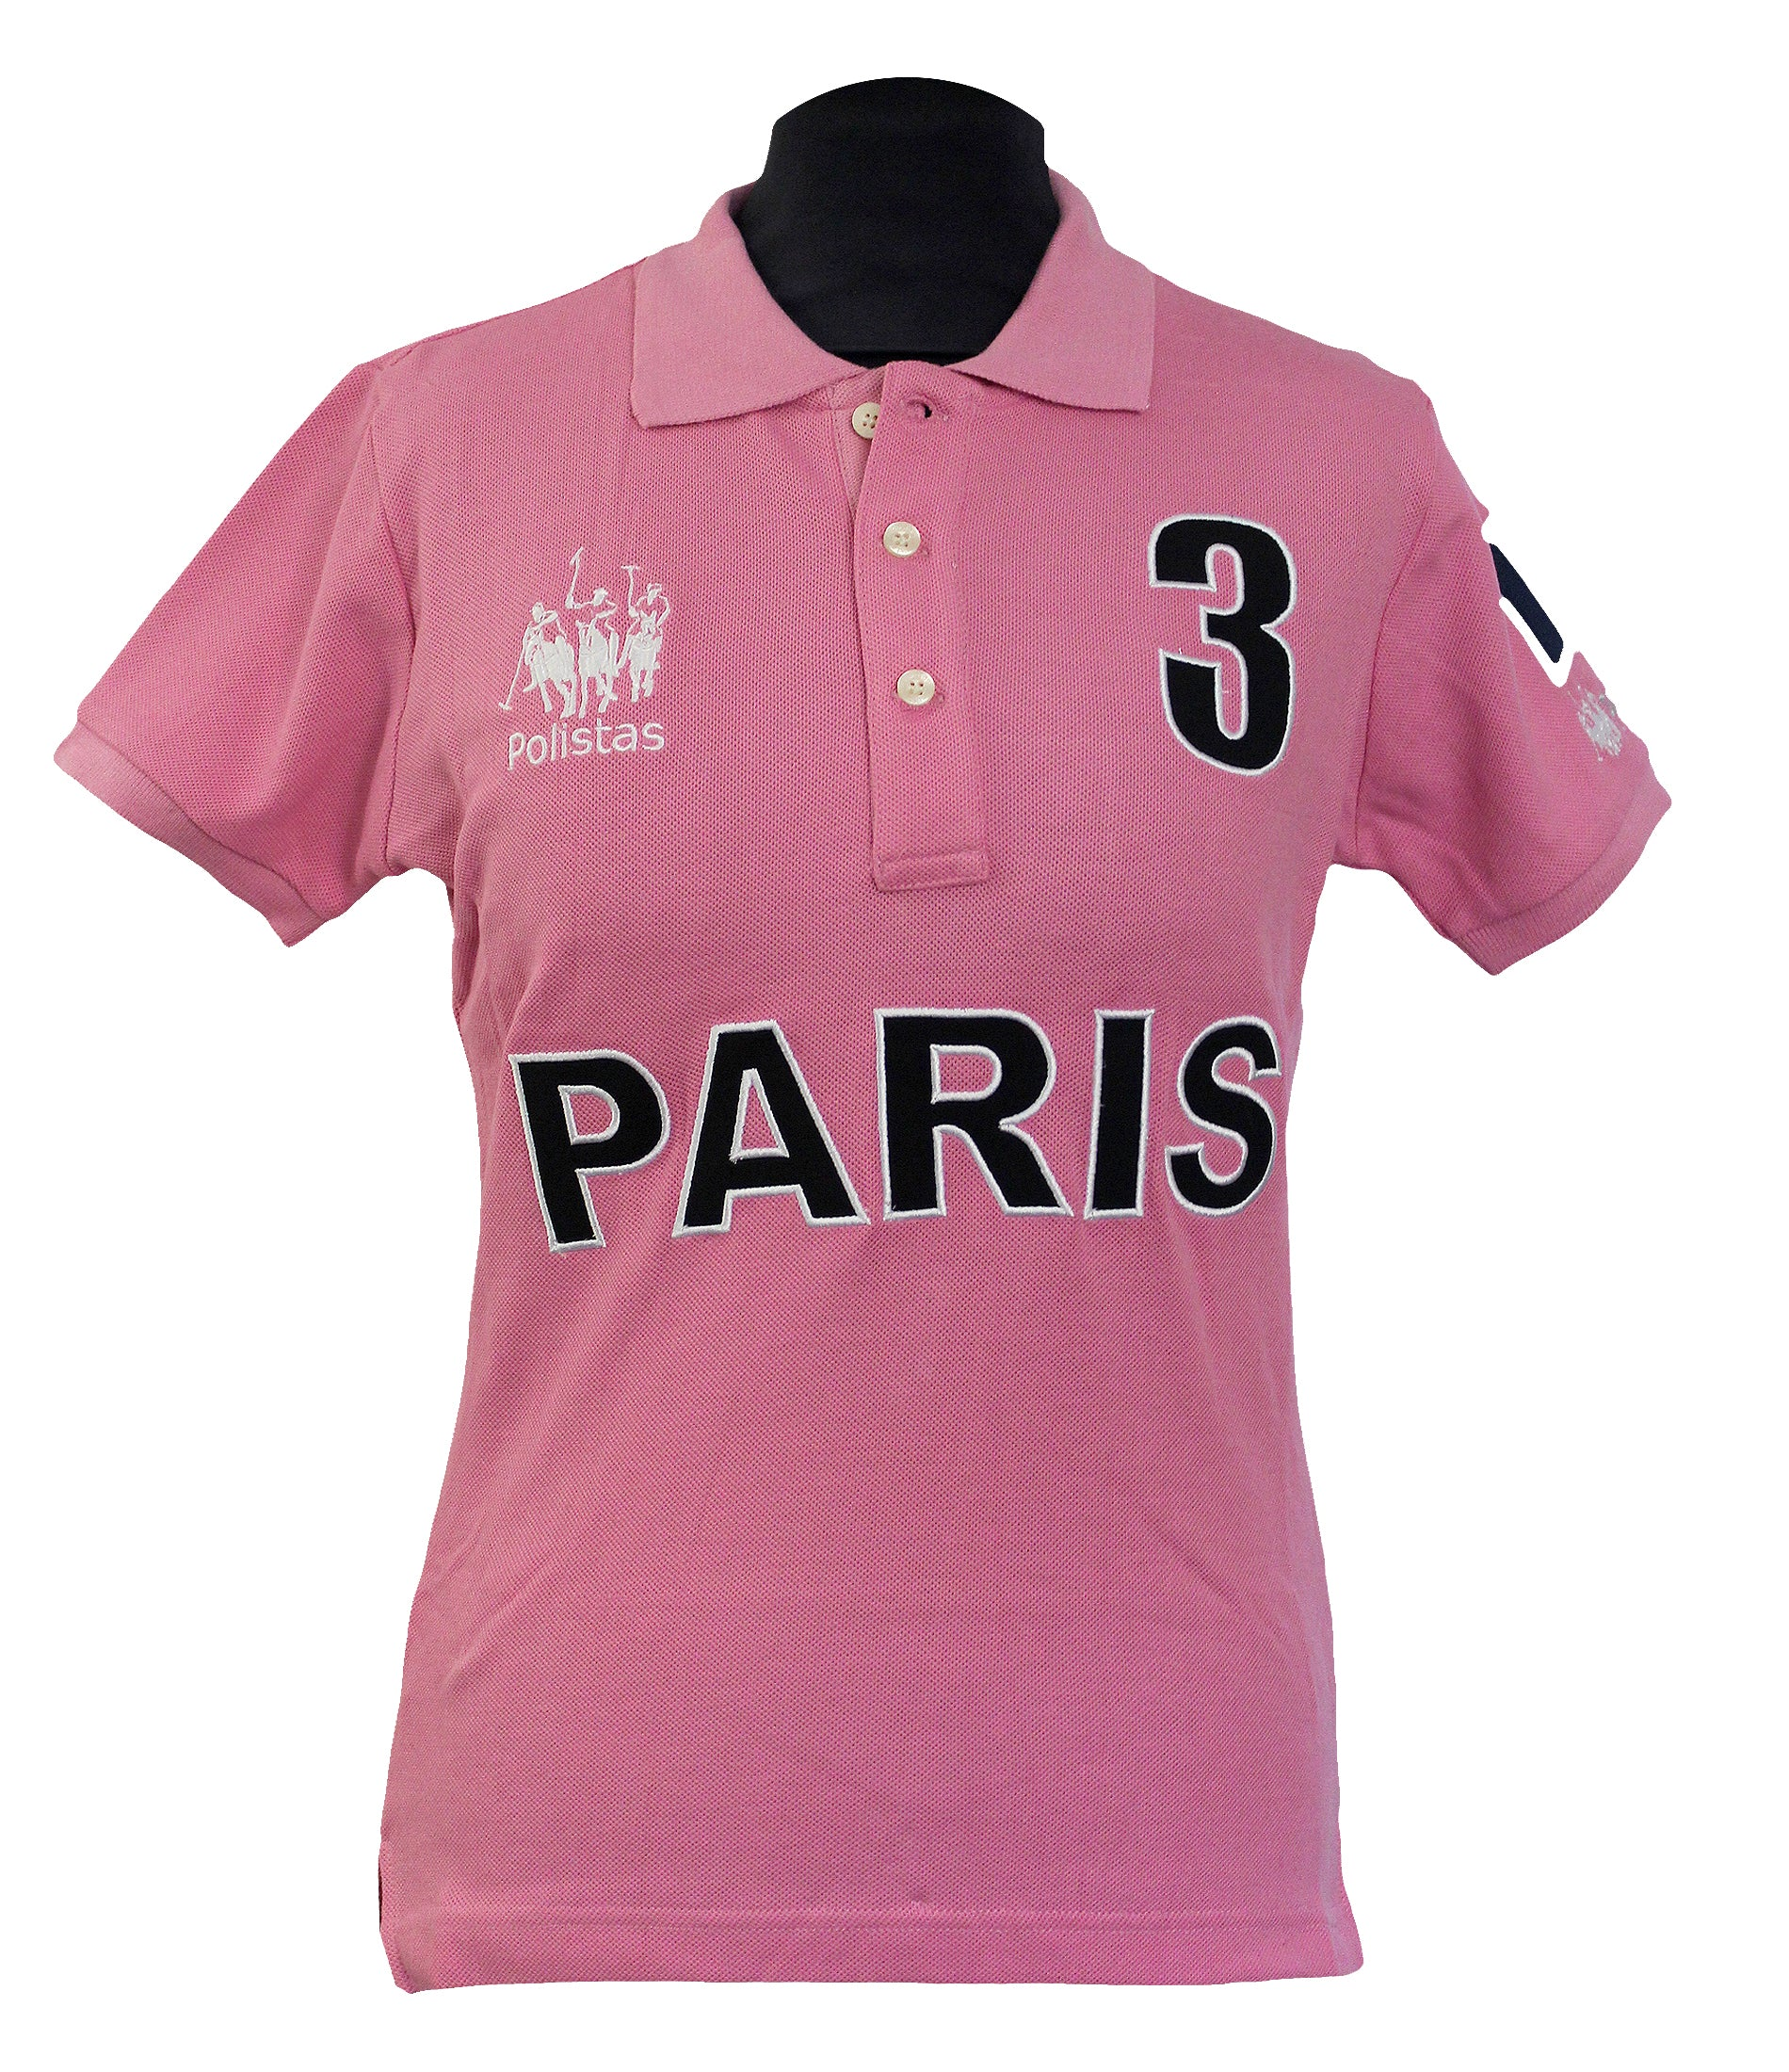 Polistas Ladies Paris Pink Polo Shirt RRP £99.95 NOW £25.00